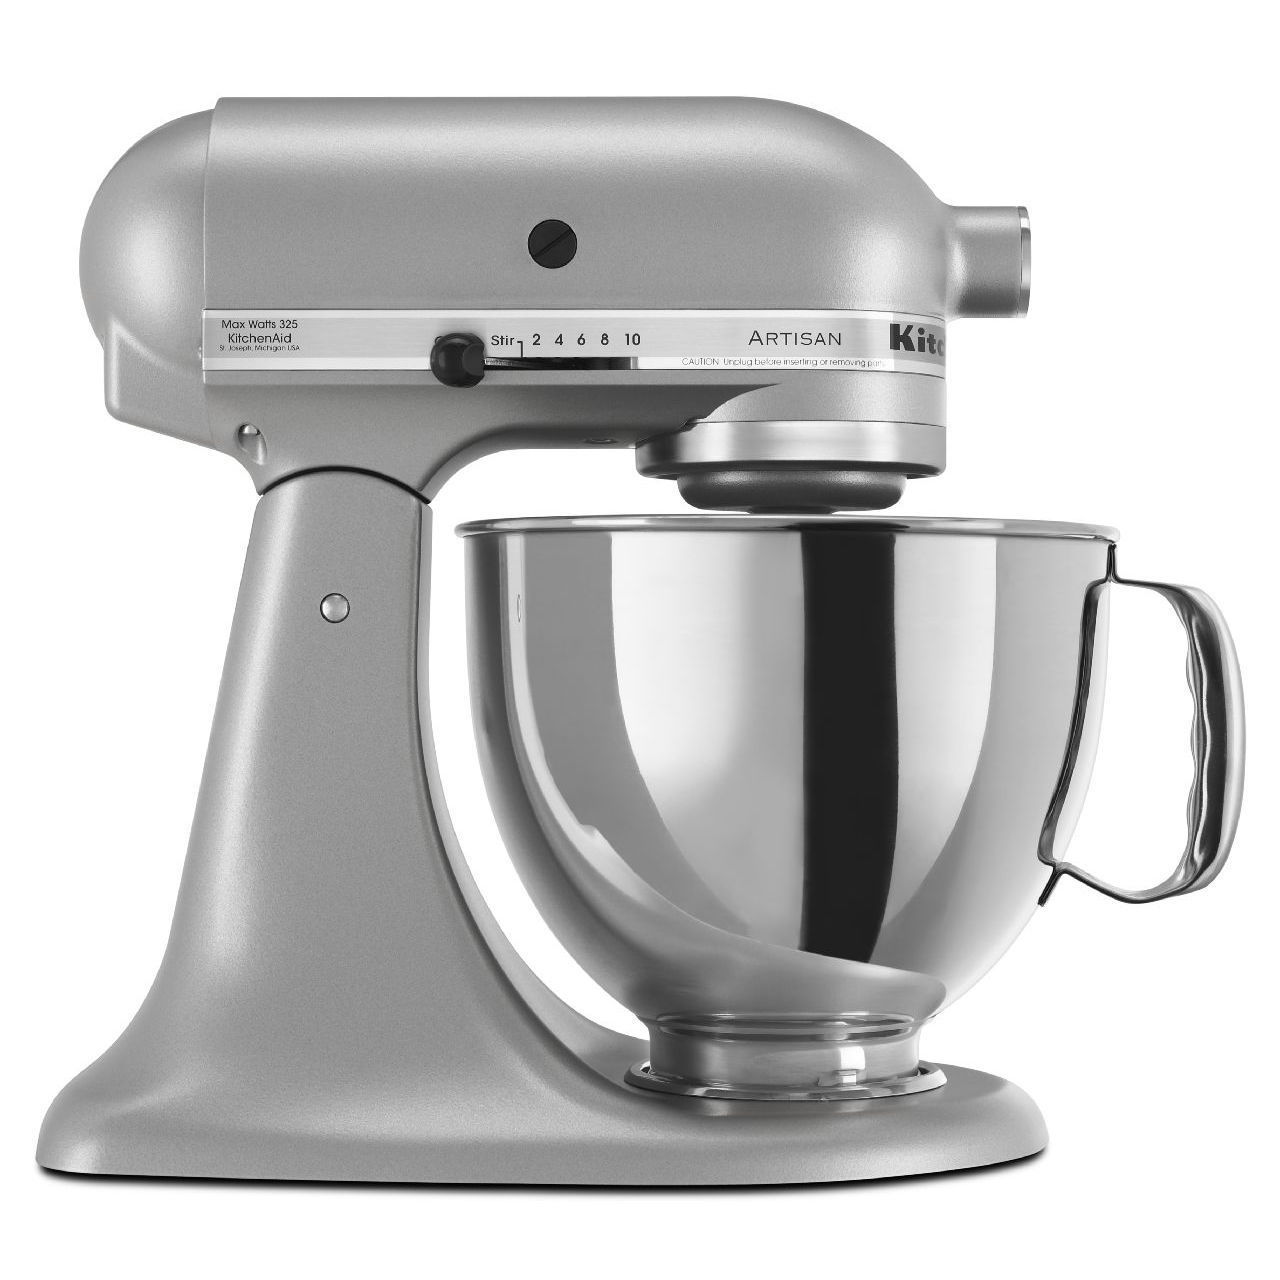 Good KitchenAid Artisan Mini 3.5 Quart Tilt Head Stand Mixer, Hot Sauce  (KSM3311XHT)   Walmart.com